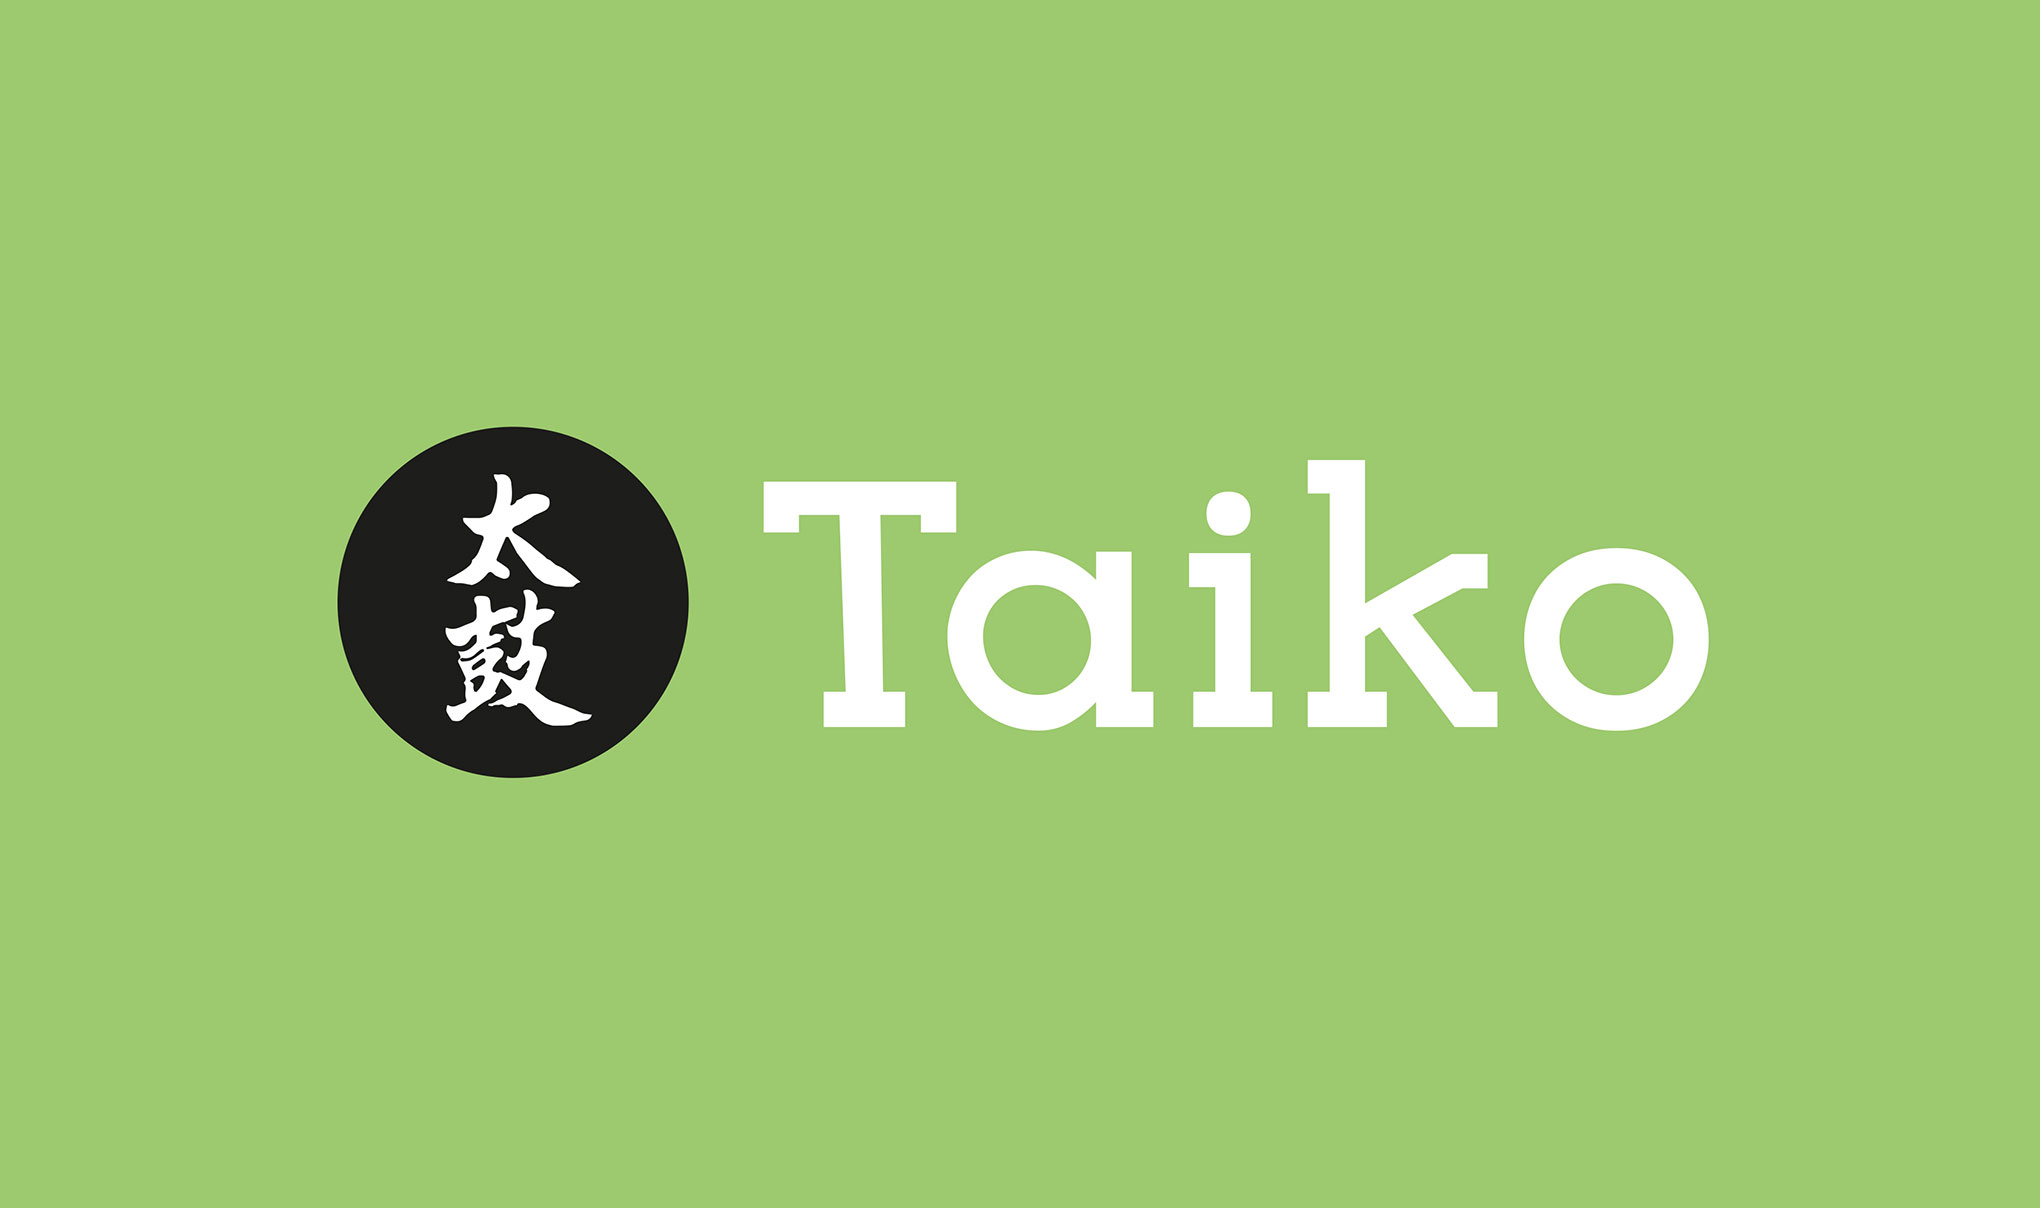 Taiko Sushi brand logo - Horizontal version on green.